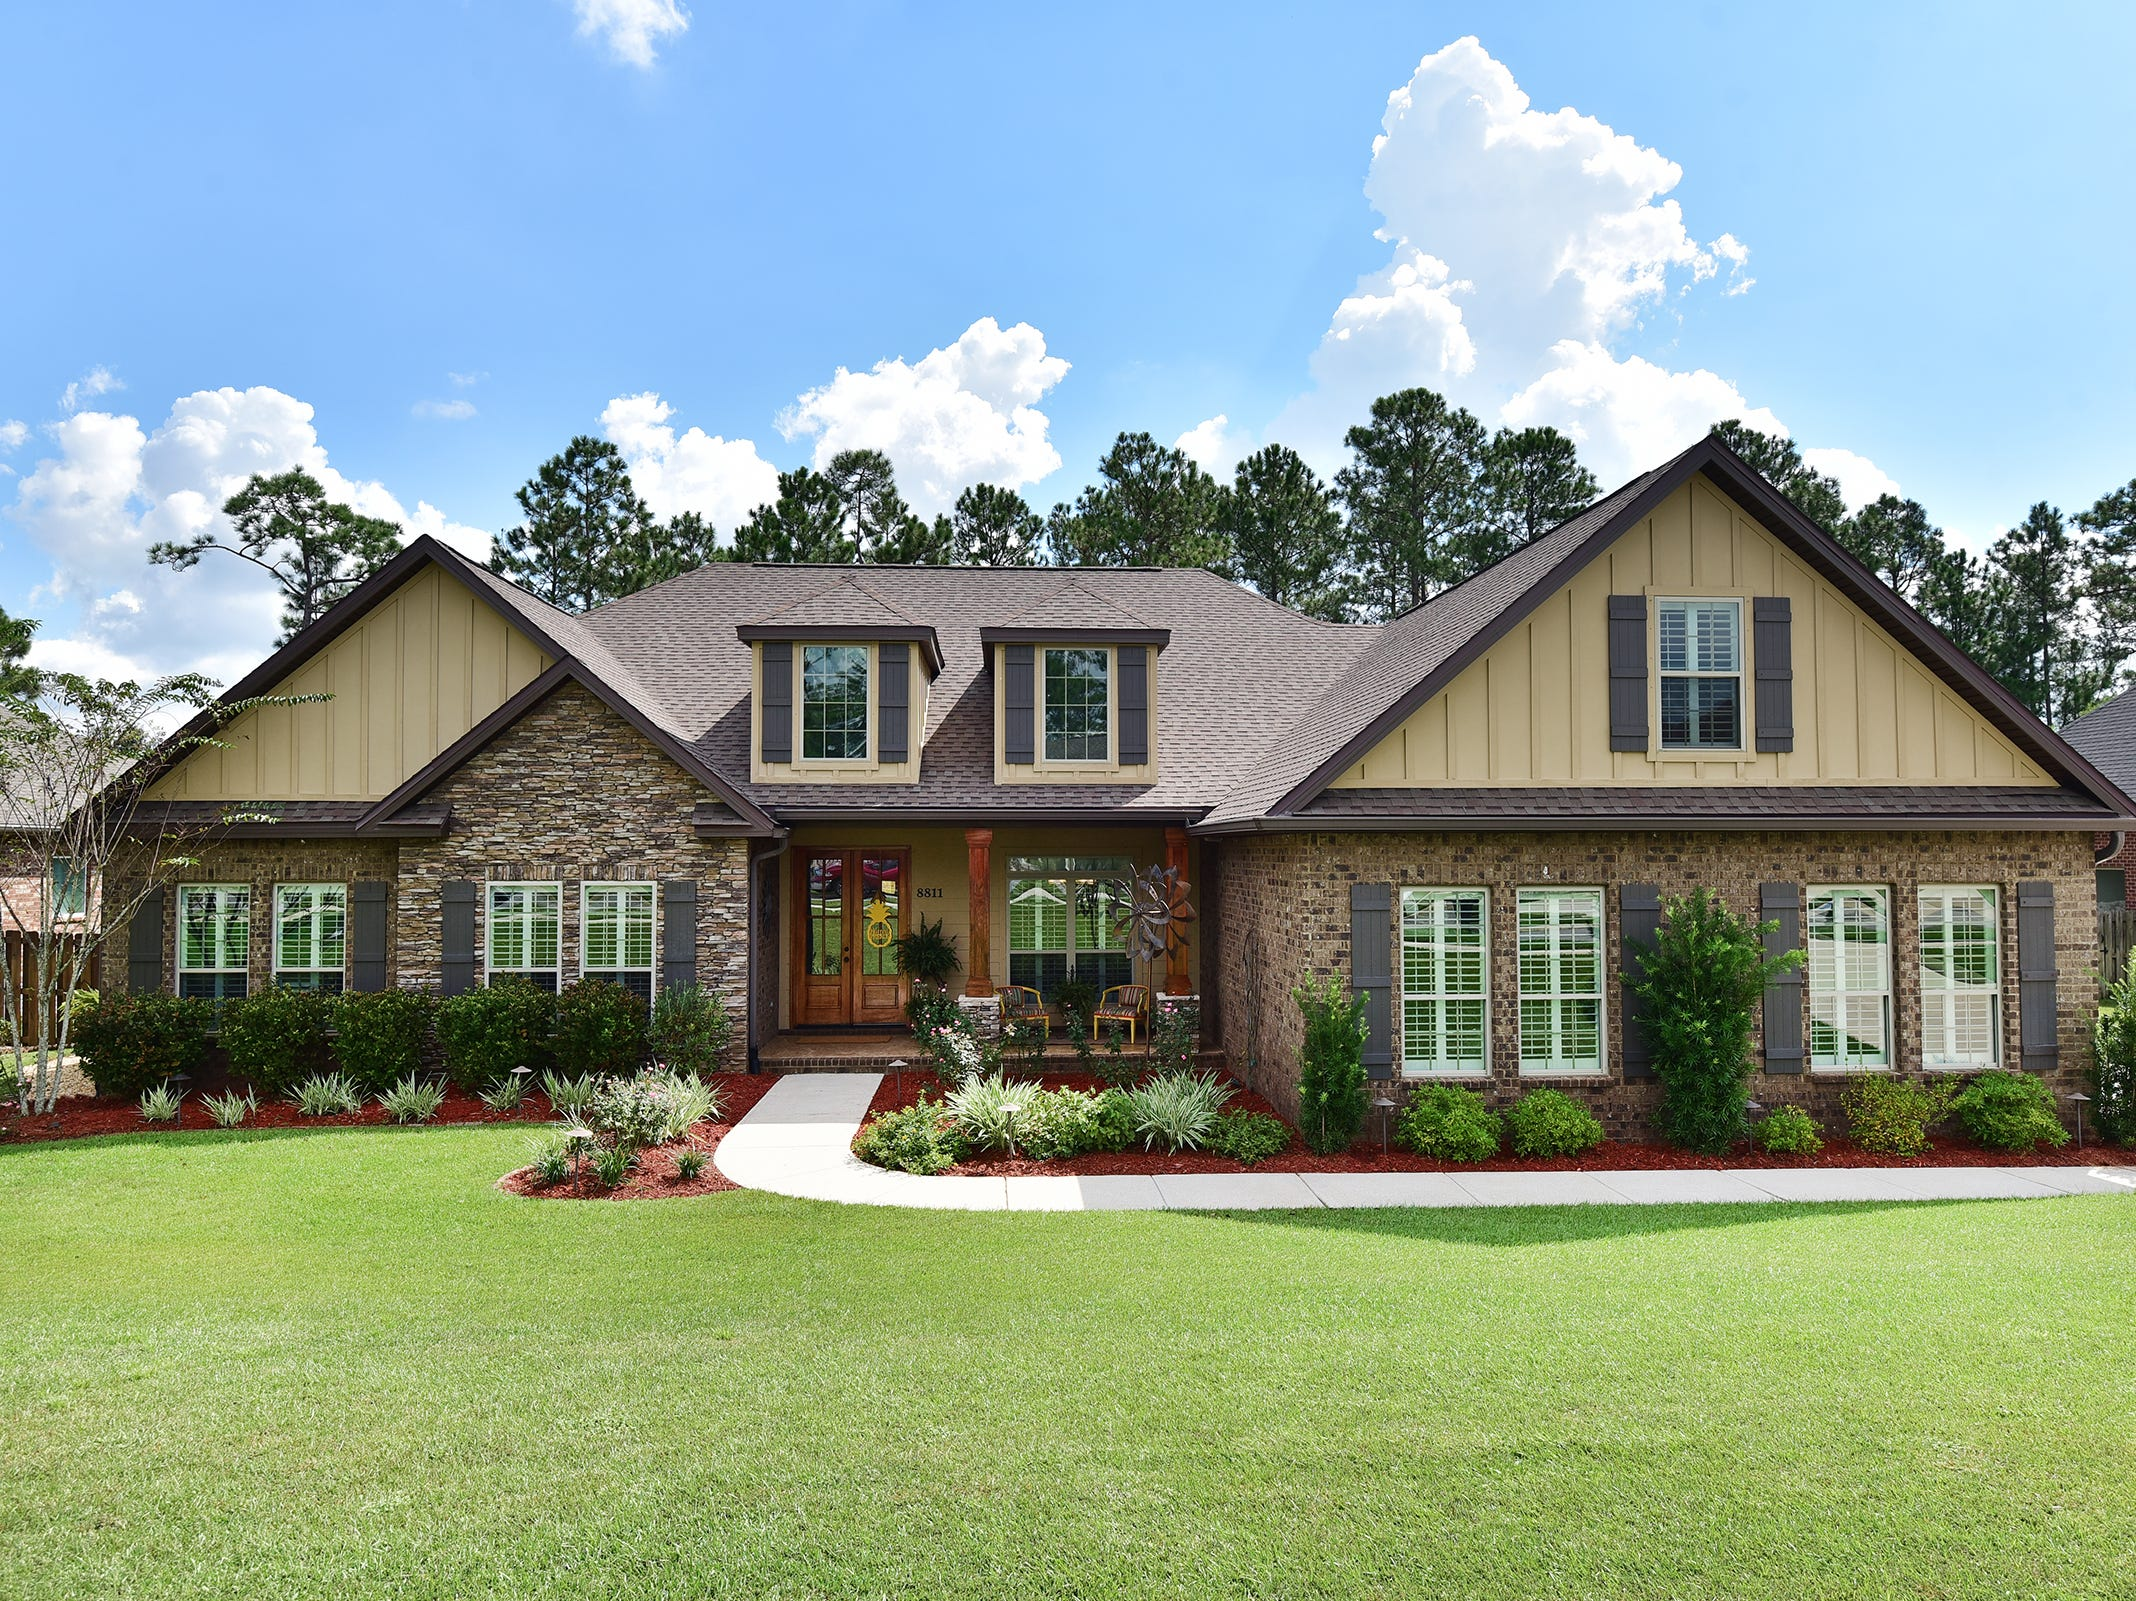 8811 Salt Grass Drive, front view.